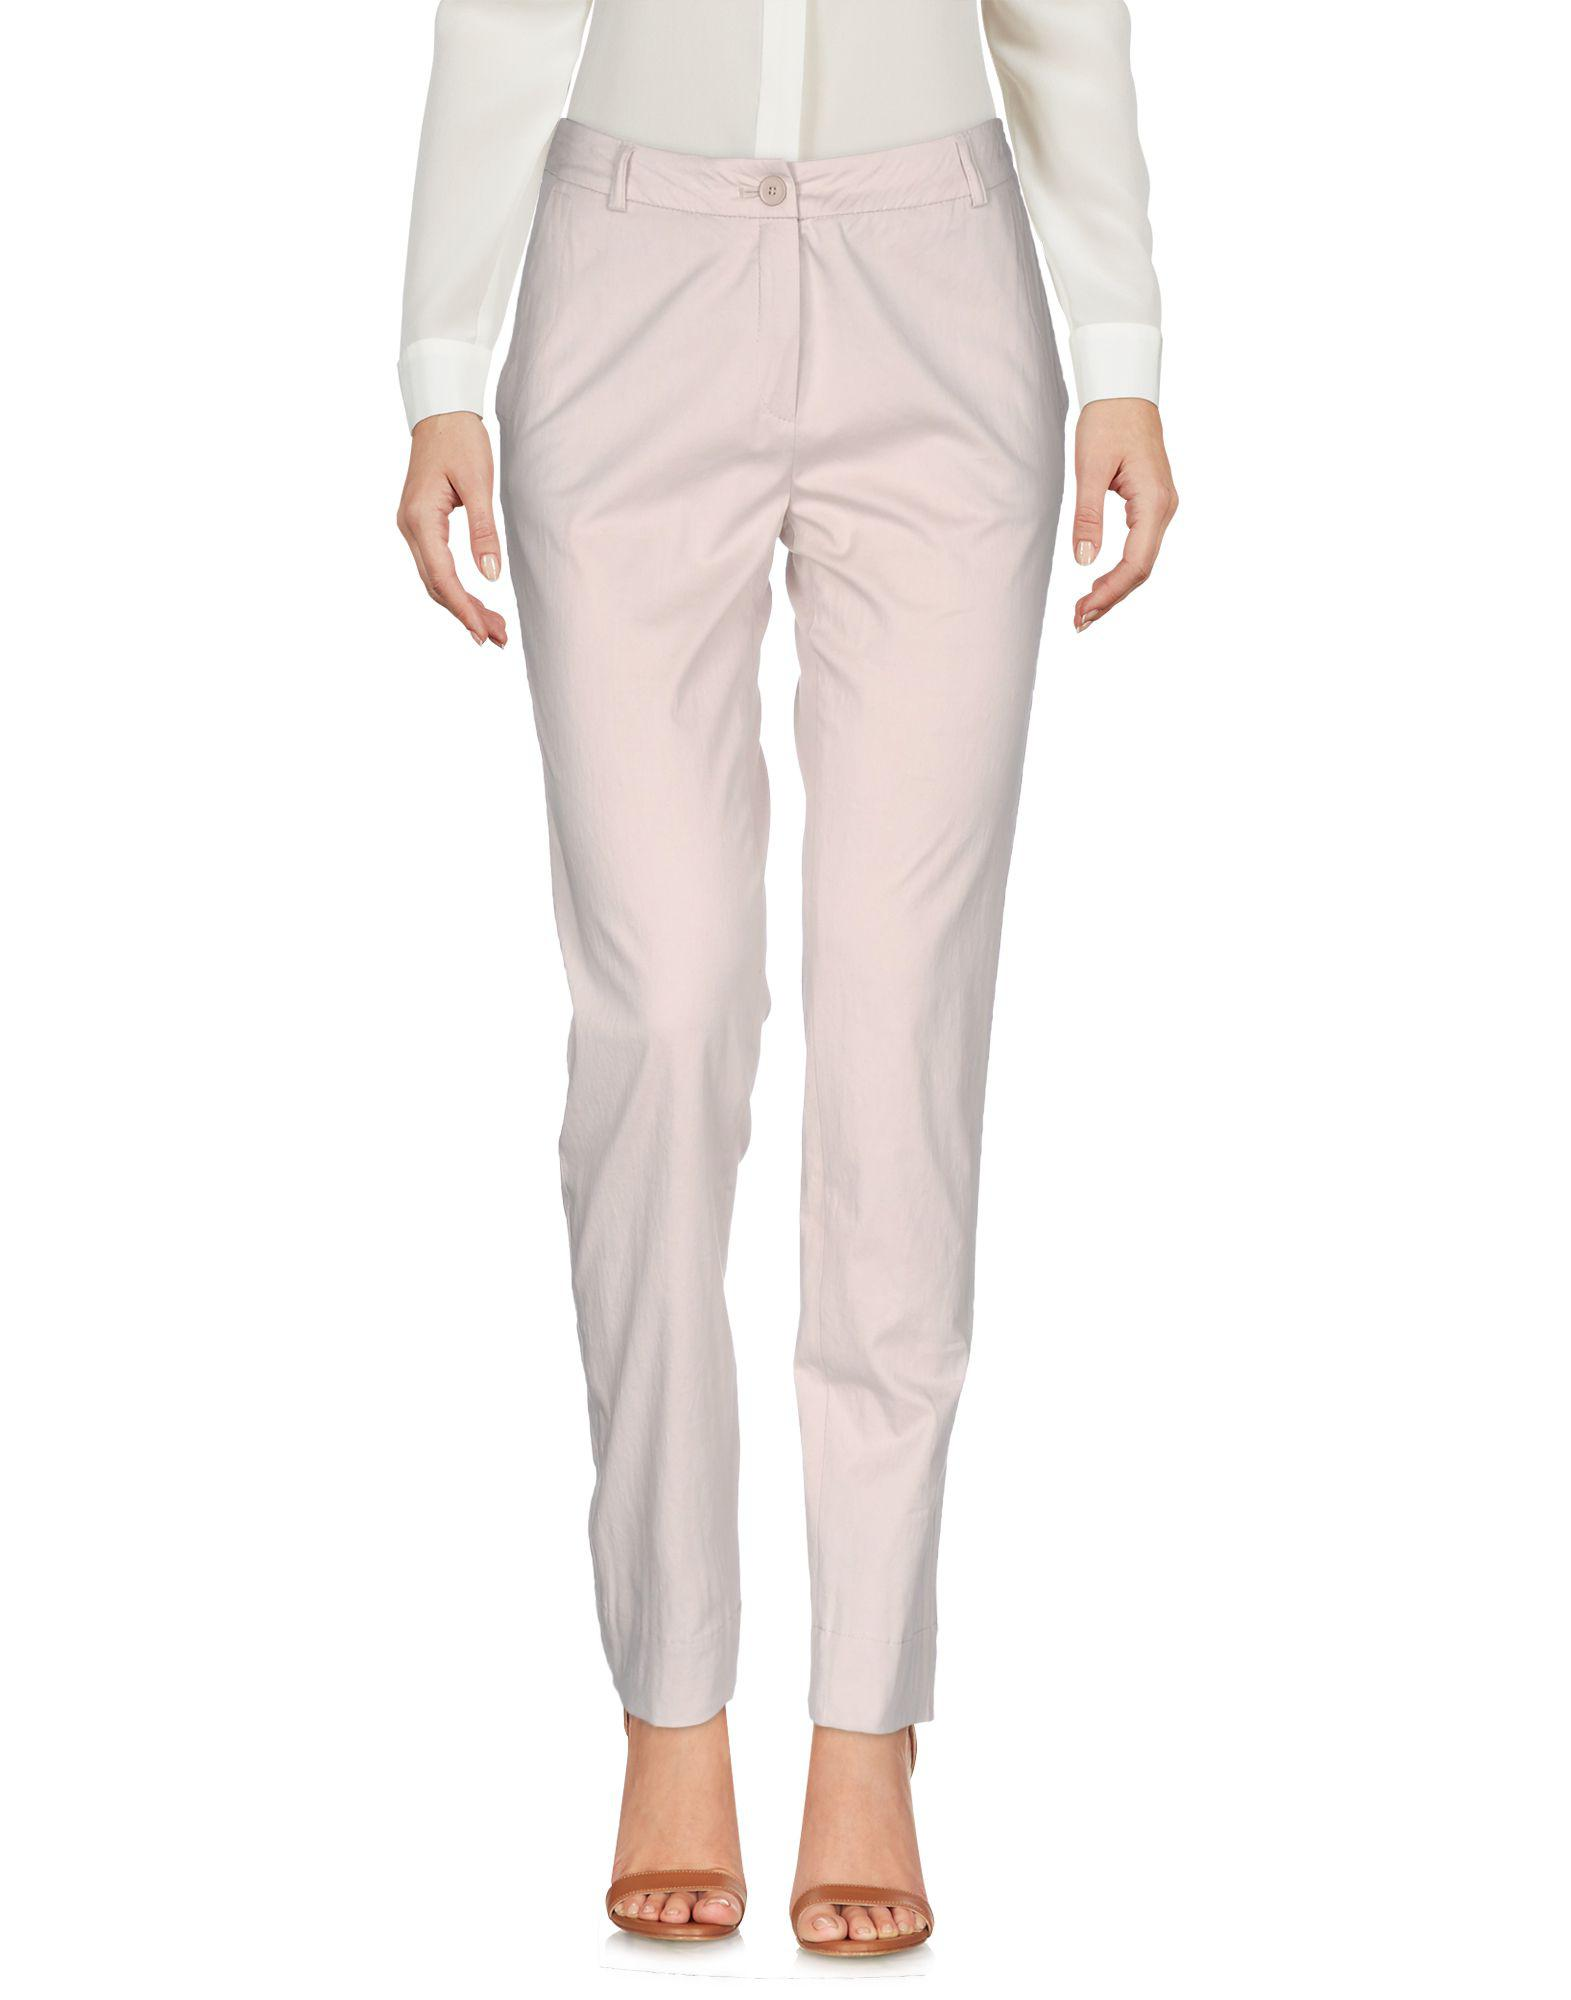 TROUSERS - Casual trousers Odeeh mMyQv0bGyk